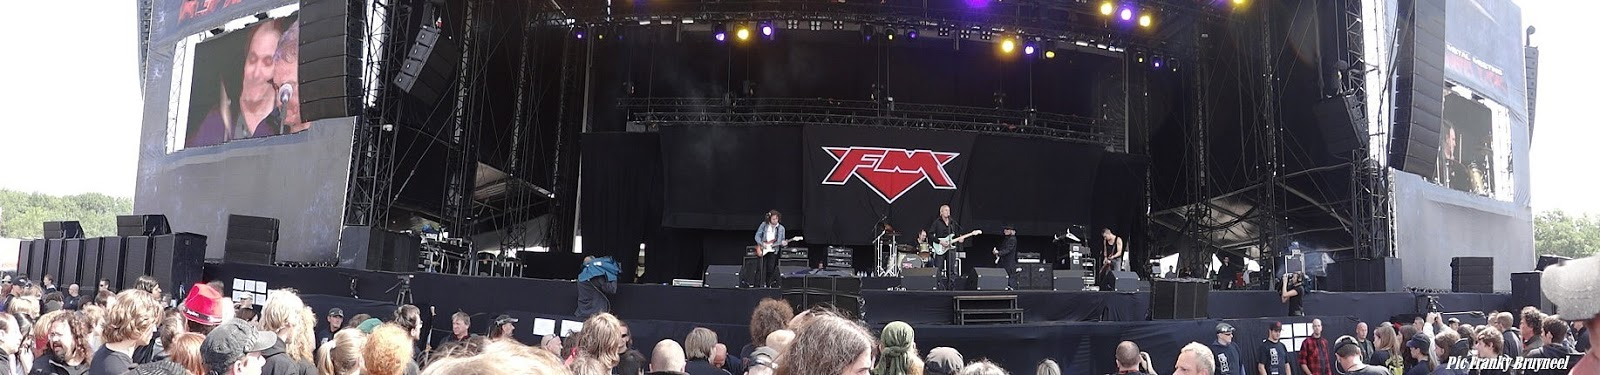 FM live at Graspop 24 June 2011. Photo courtesy of Franky Bruyneel at Rock Report